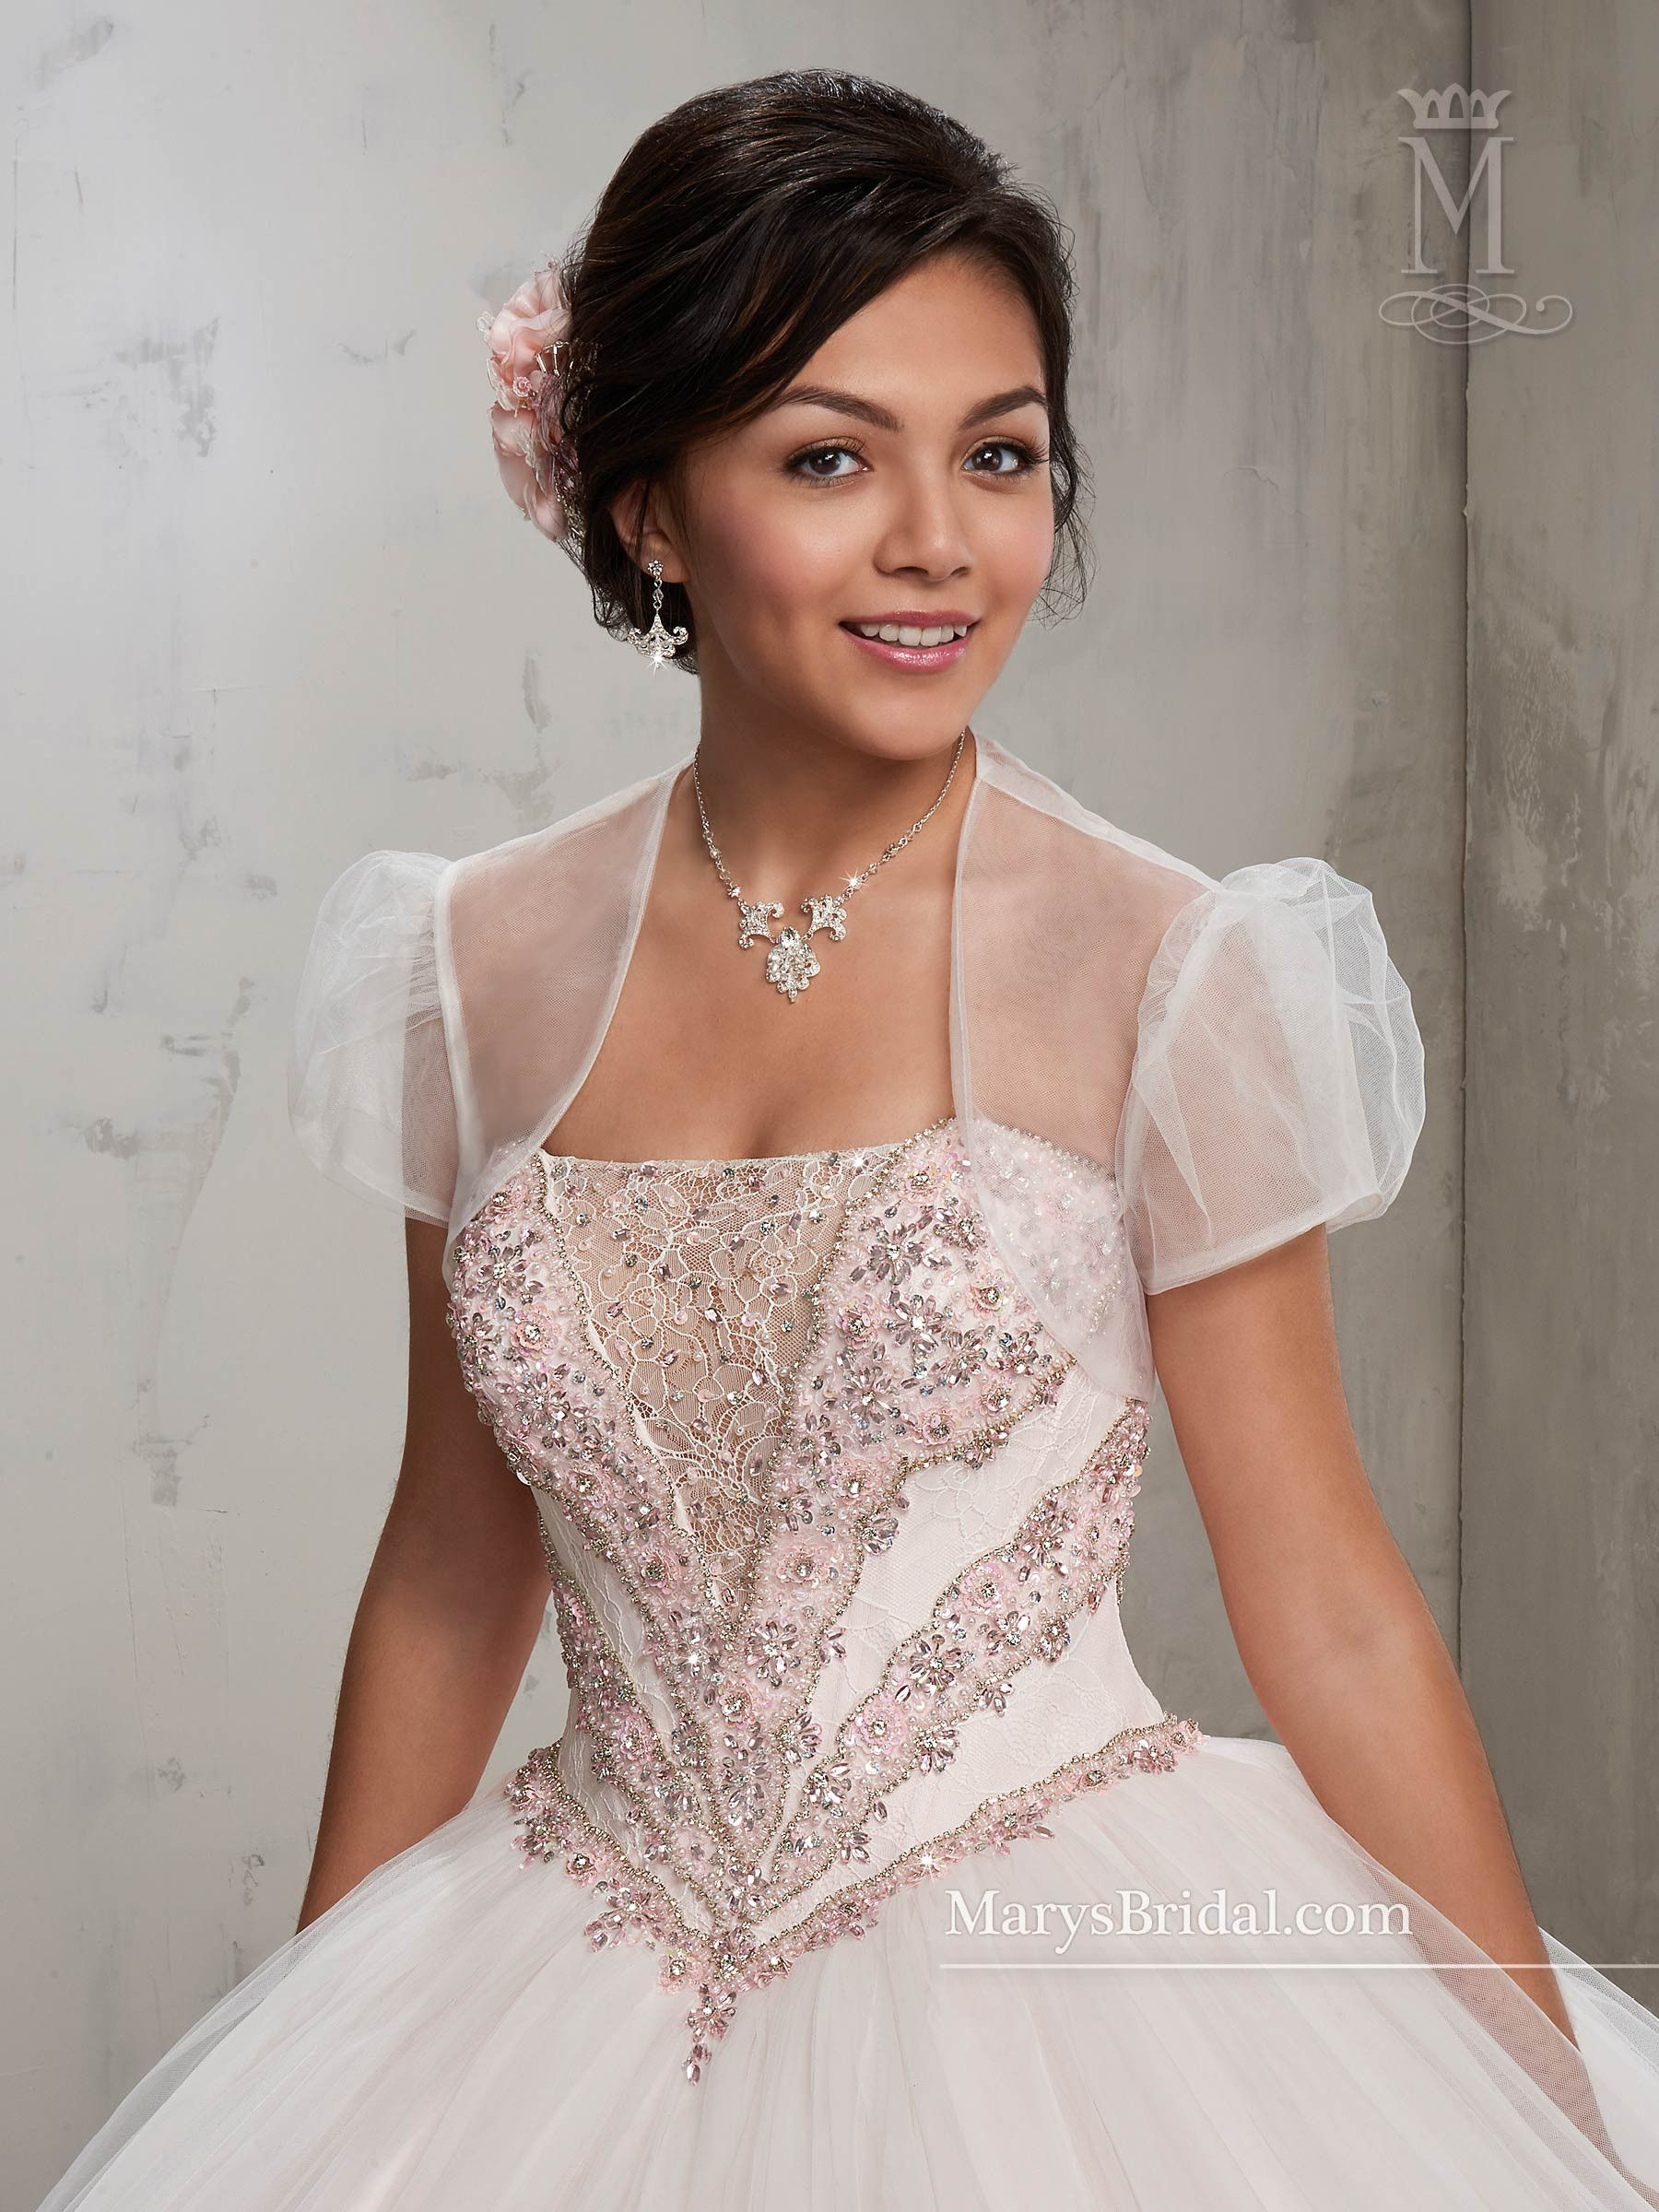 af32b827263 Strapless A-line Quinceanera Dress by Mary s Bridal Beloving 4809 ...